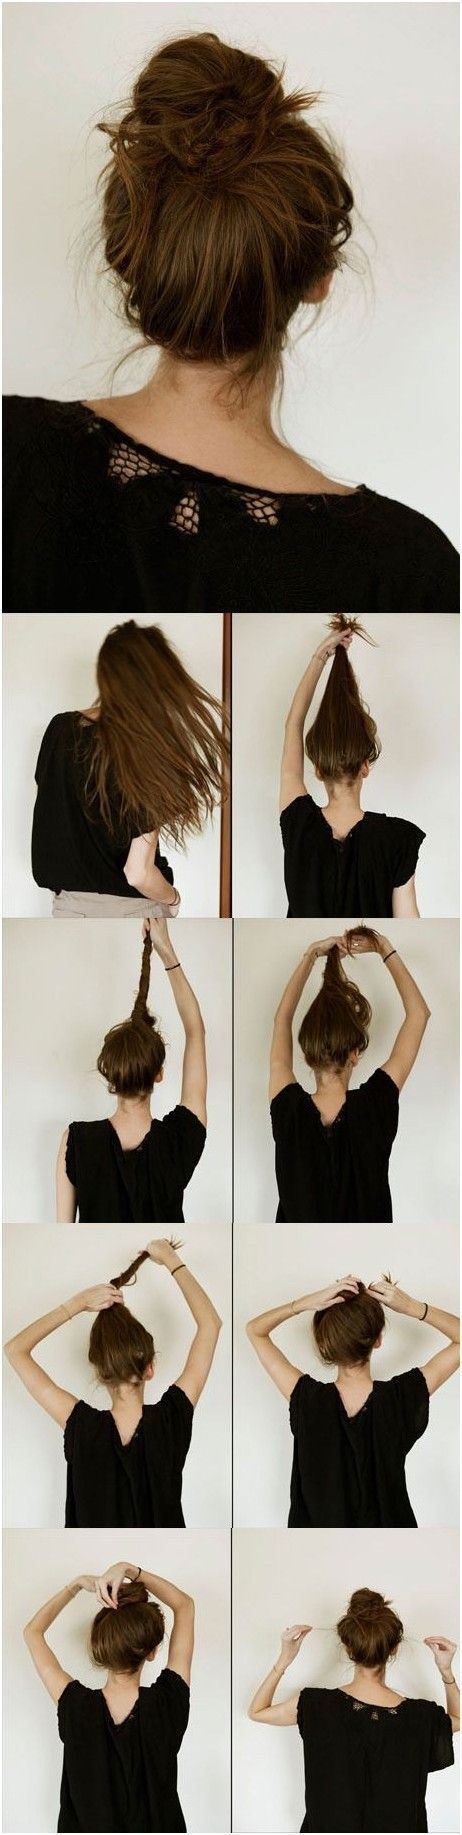 Messy Ballerina Bun Hairstyle Tutorial